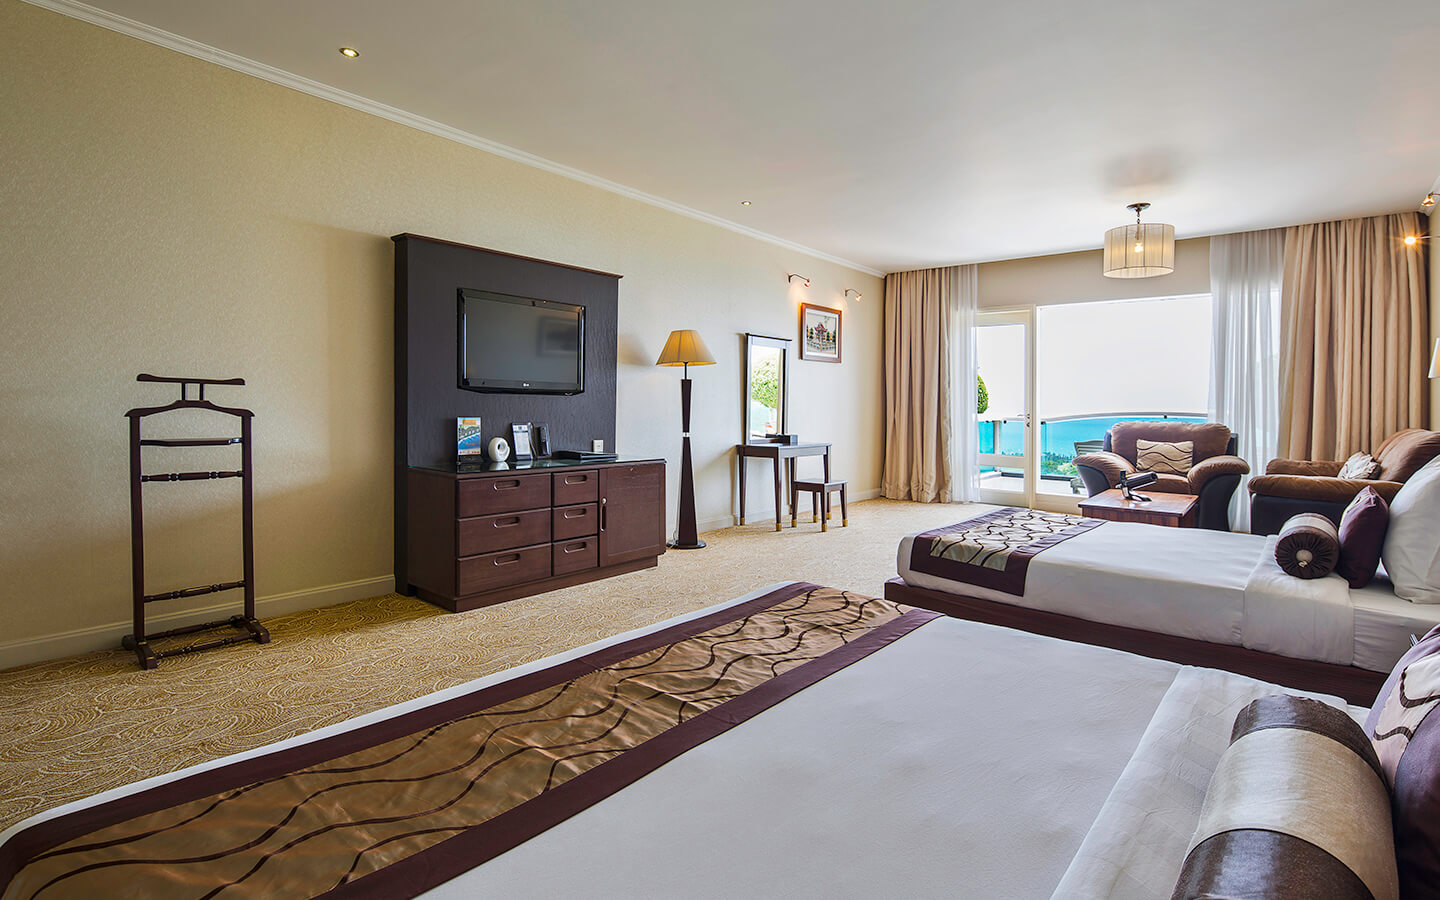 phong premium deluxe family sea links beach hotel